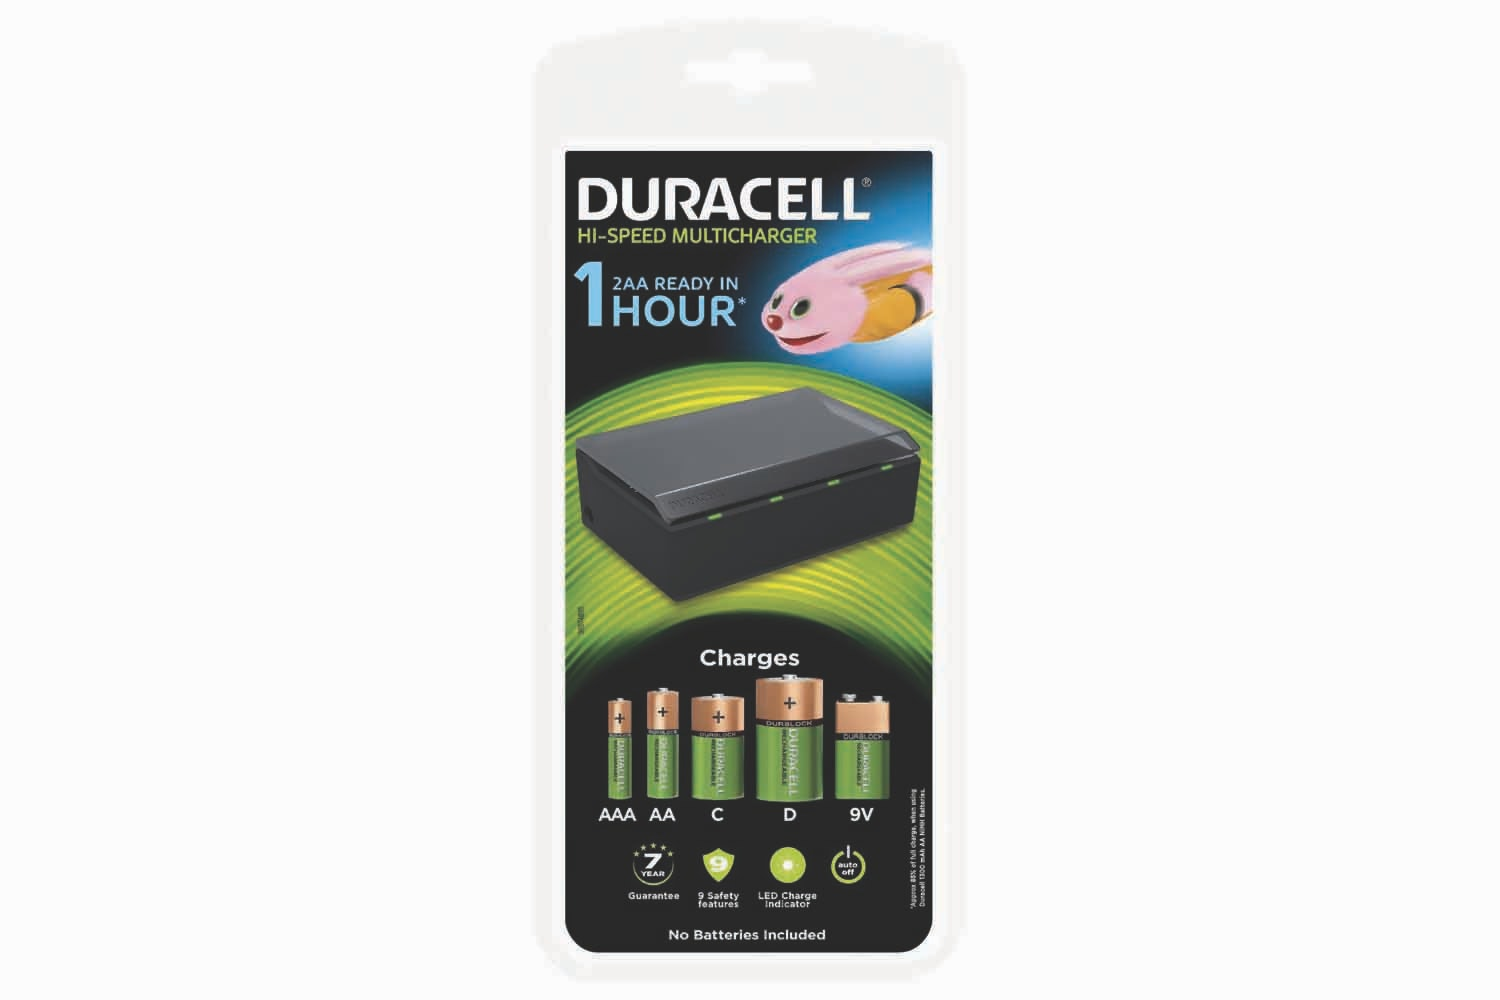 Duracell CEF22 Multi Charger